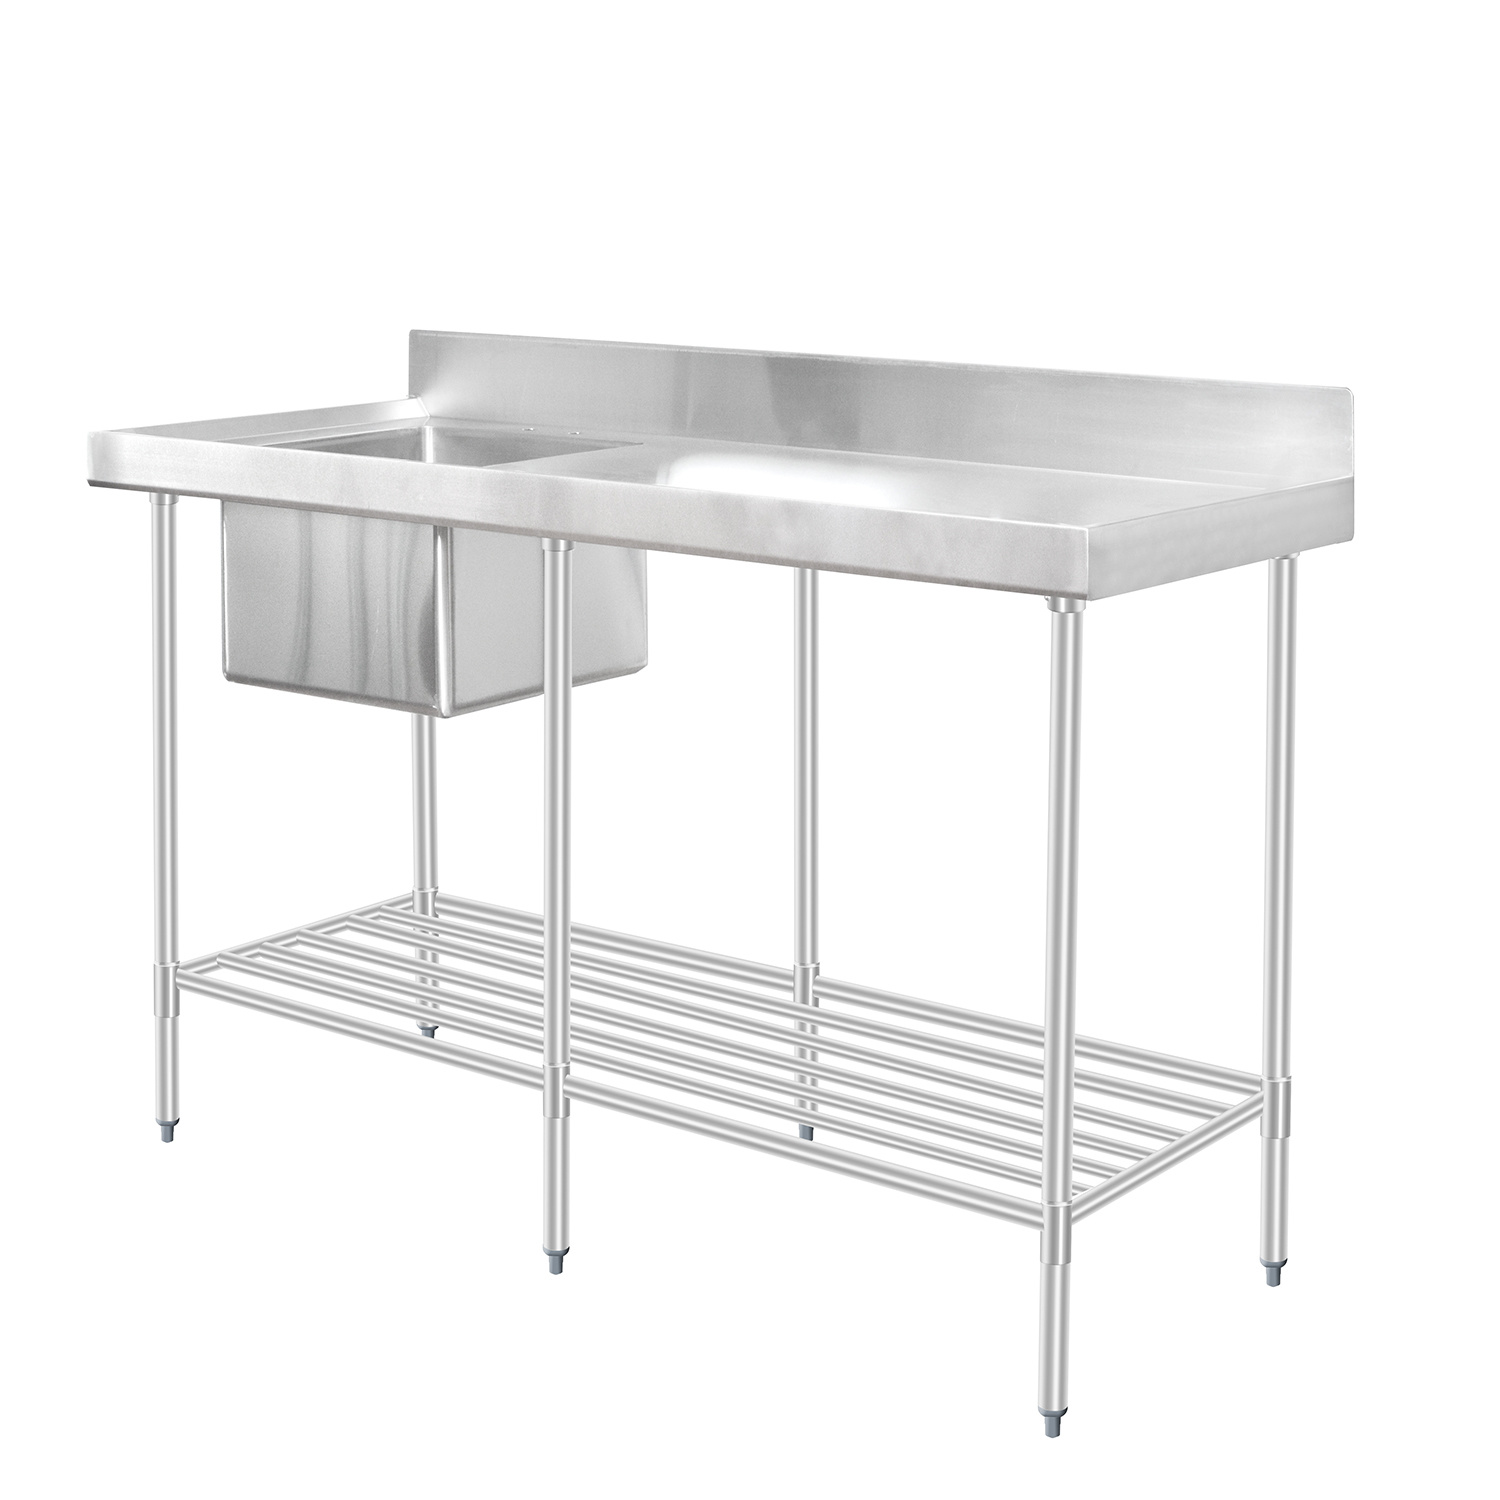 China Kitchen Stainless Steel Sink Work Table Lab Used Sink Table China Stainless Steel Work Table With Sink Stainless Steel Wash Table